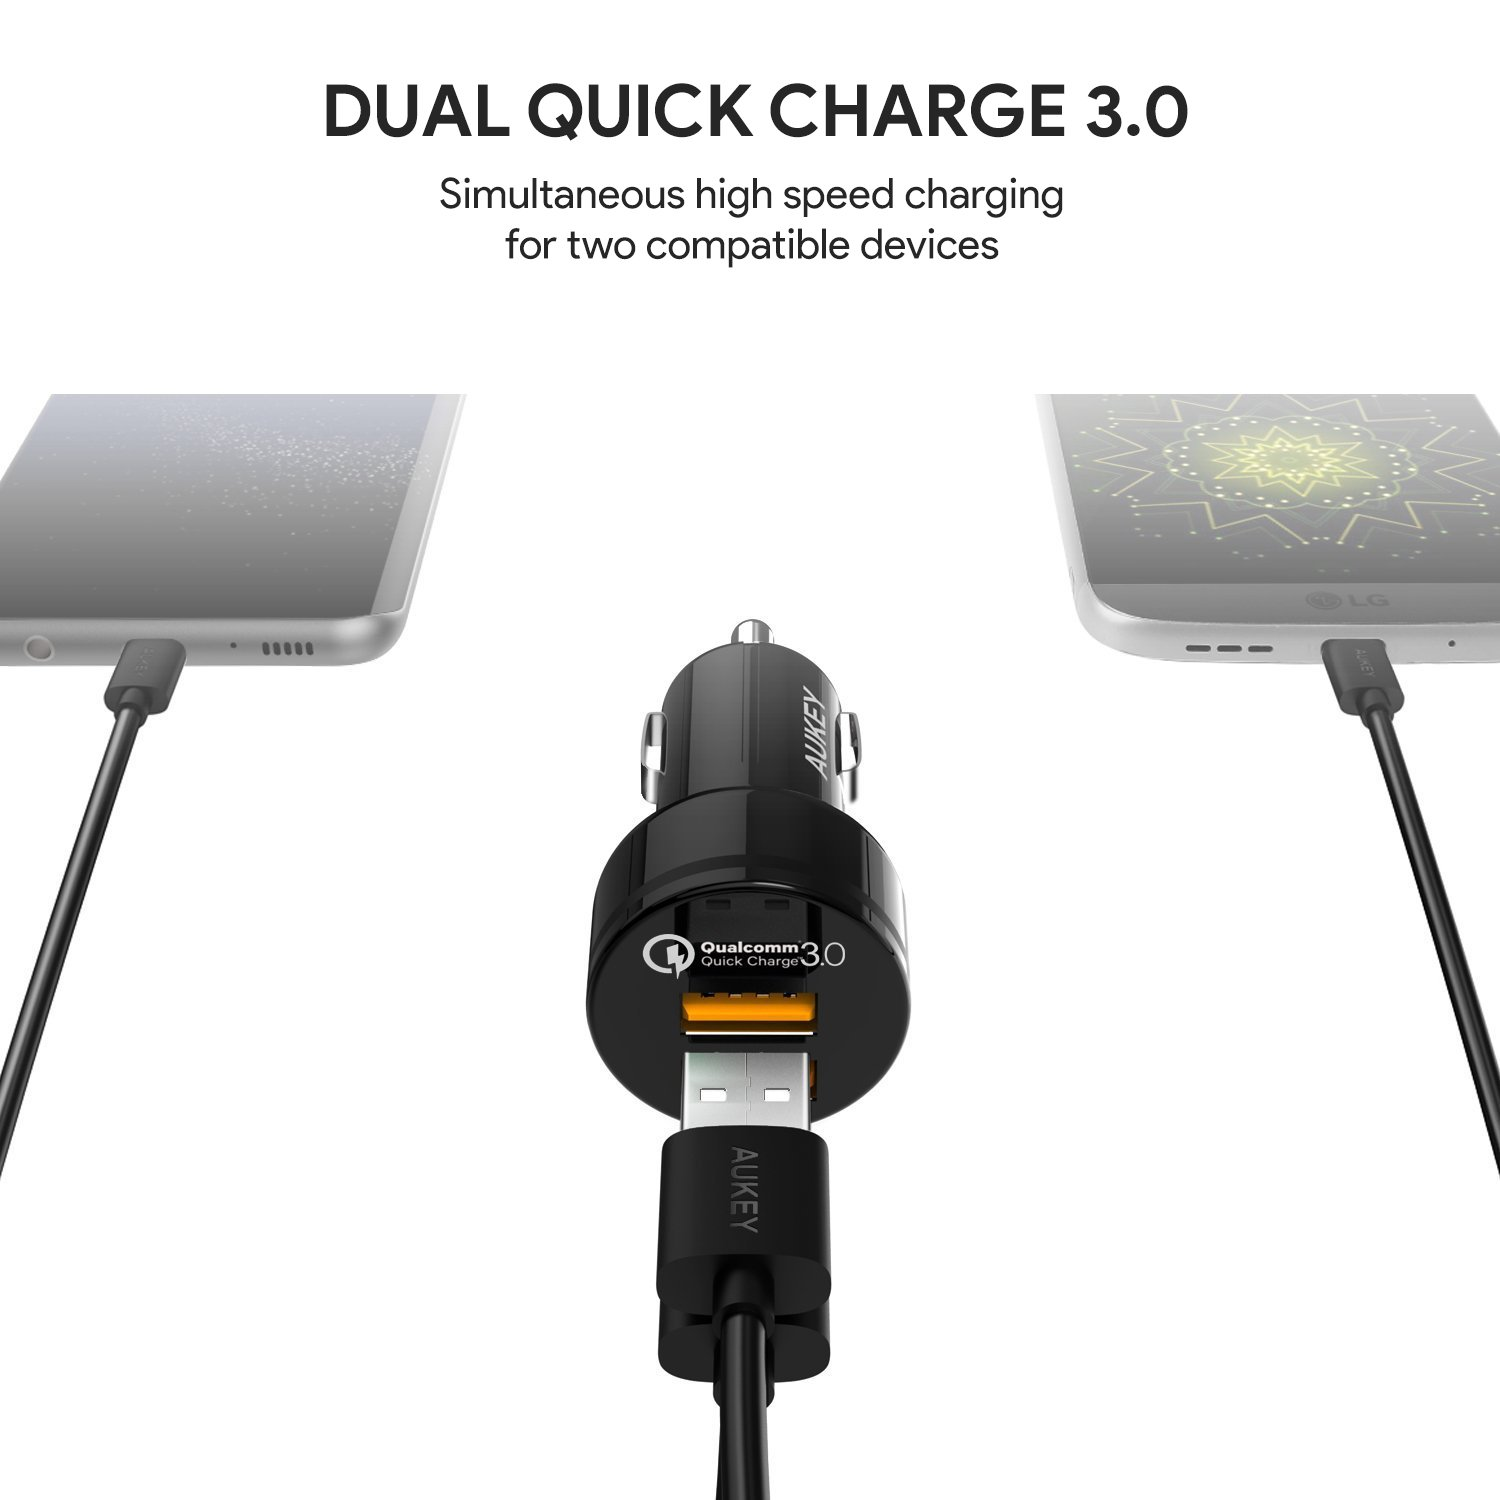 AUKEY Car Charger with Quick Charge 3.0, 39W Dual Ports for Samsung Galaxy Note8 / S9 / S8 / S8+, LG G6 / V30, HTC 10 and More   Qualcomm Certified by AUKEY (Image #3)